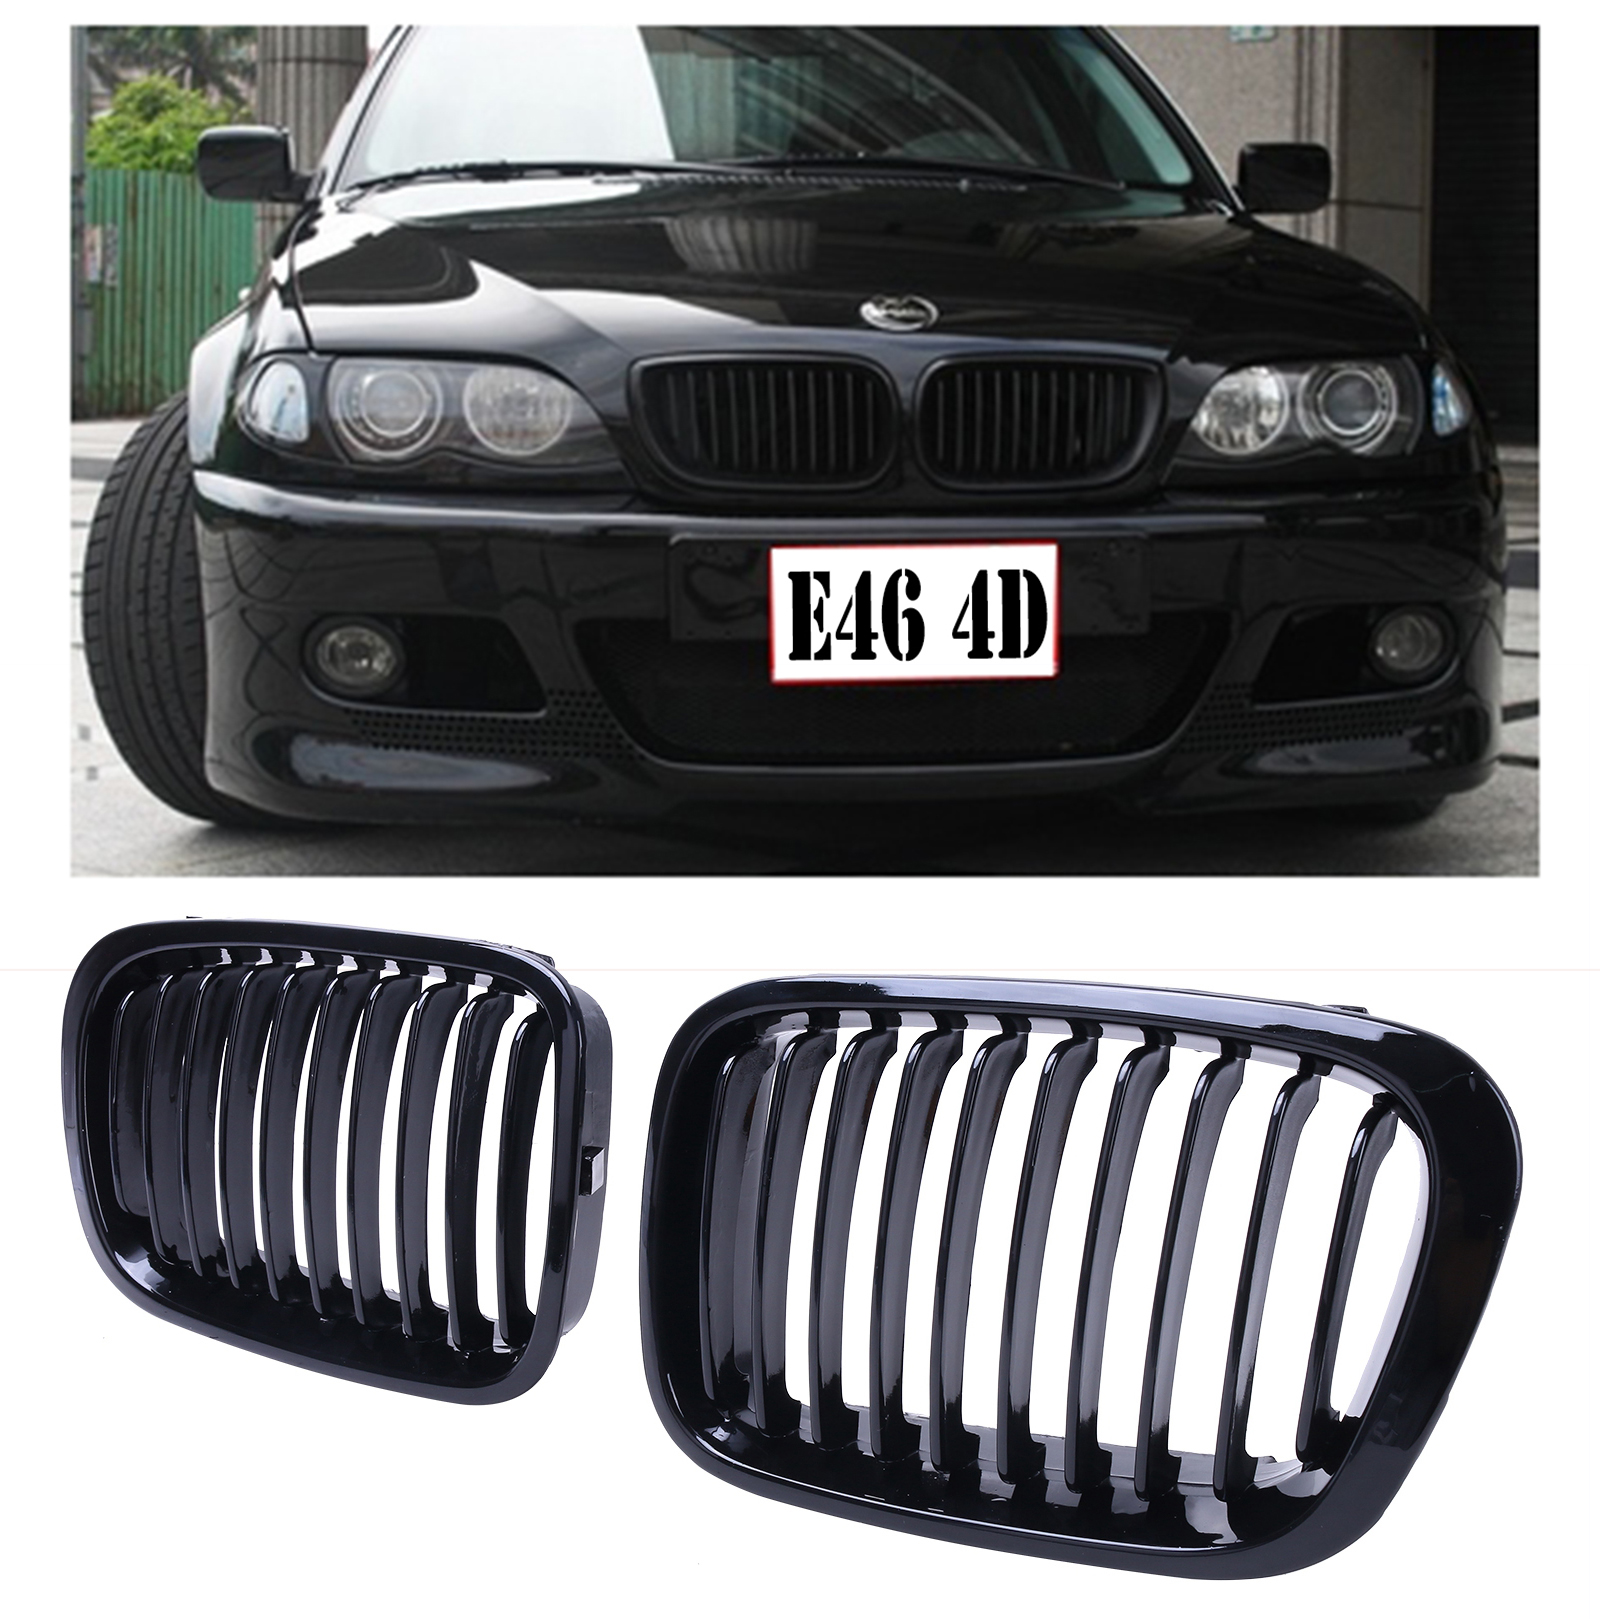 2x Gloss Black Front Kidney Grills Grille Fit Bmw For Bmw